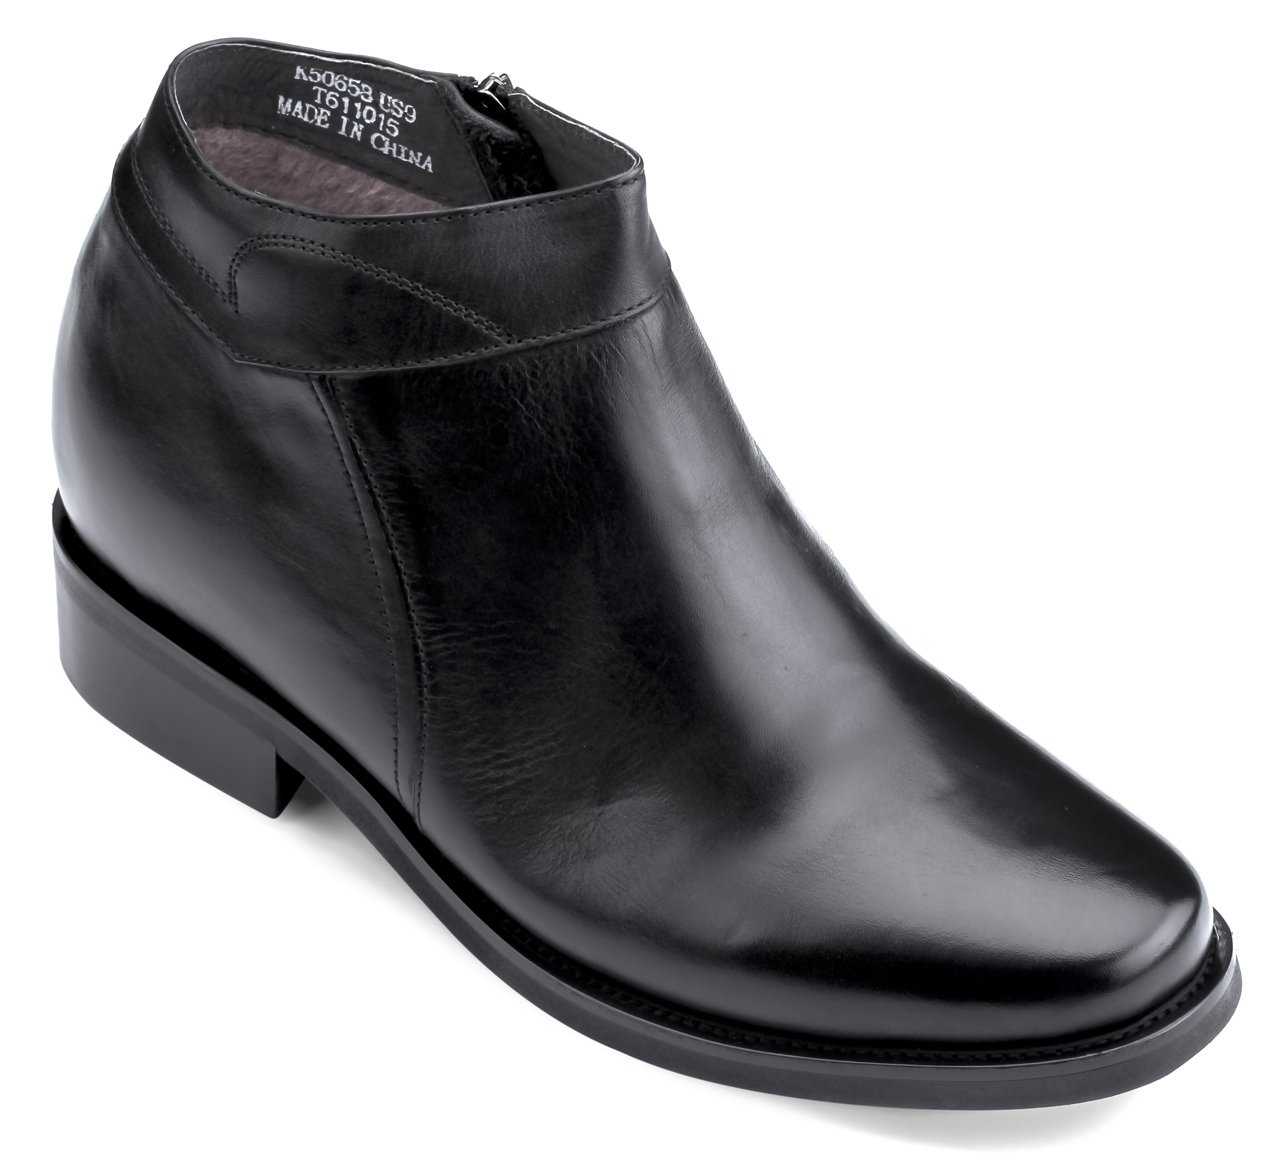 CALDEN - K50658 - 3.6 Inches Taller - Size 11.5 D US - Height Increasing Elevator Shoes (Black Dress Boots)